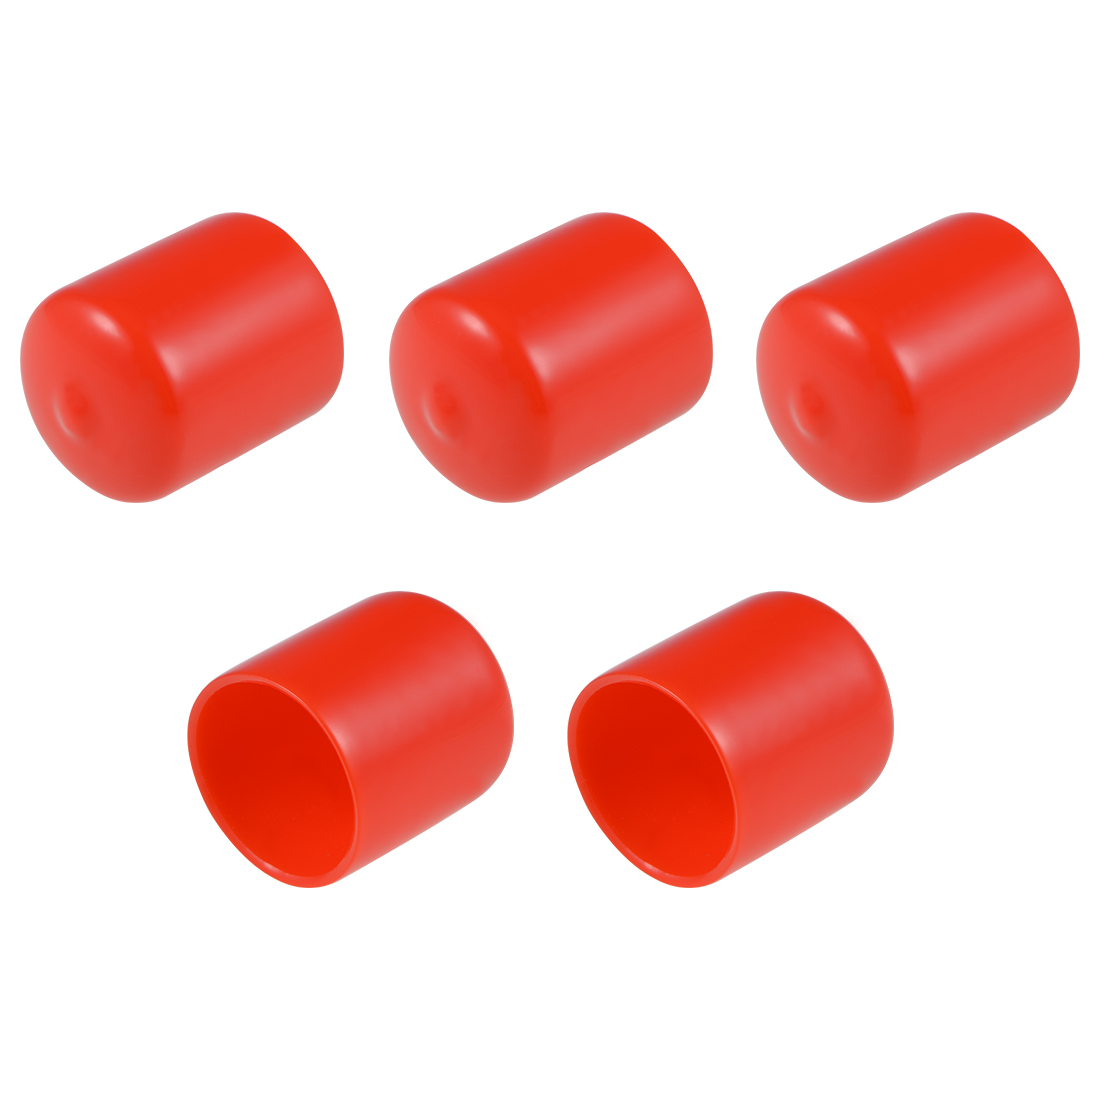 Screw Thread Protectors, 27mm ID 34mm Length Round End Cap Cover Red 5pcs